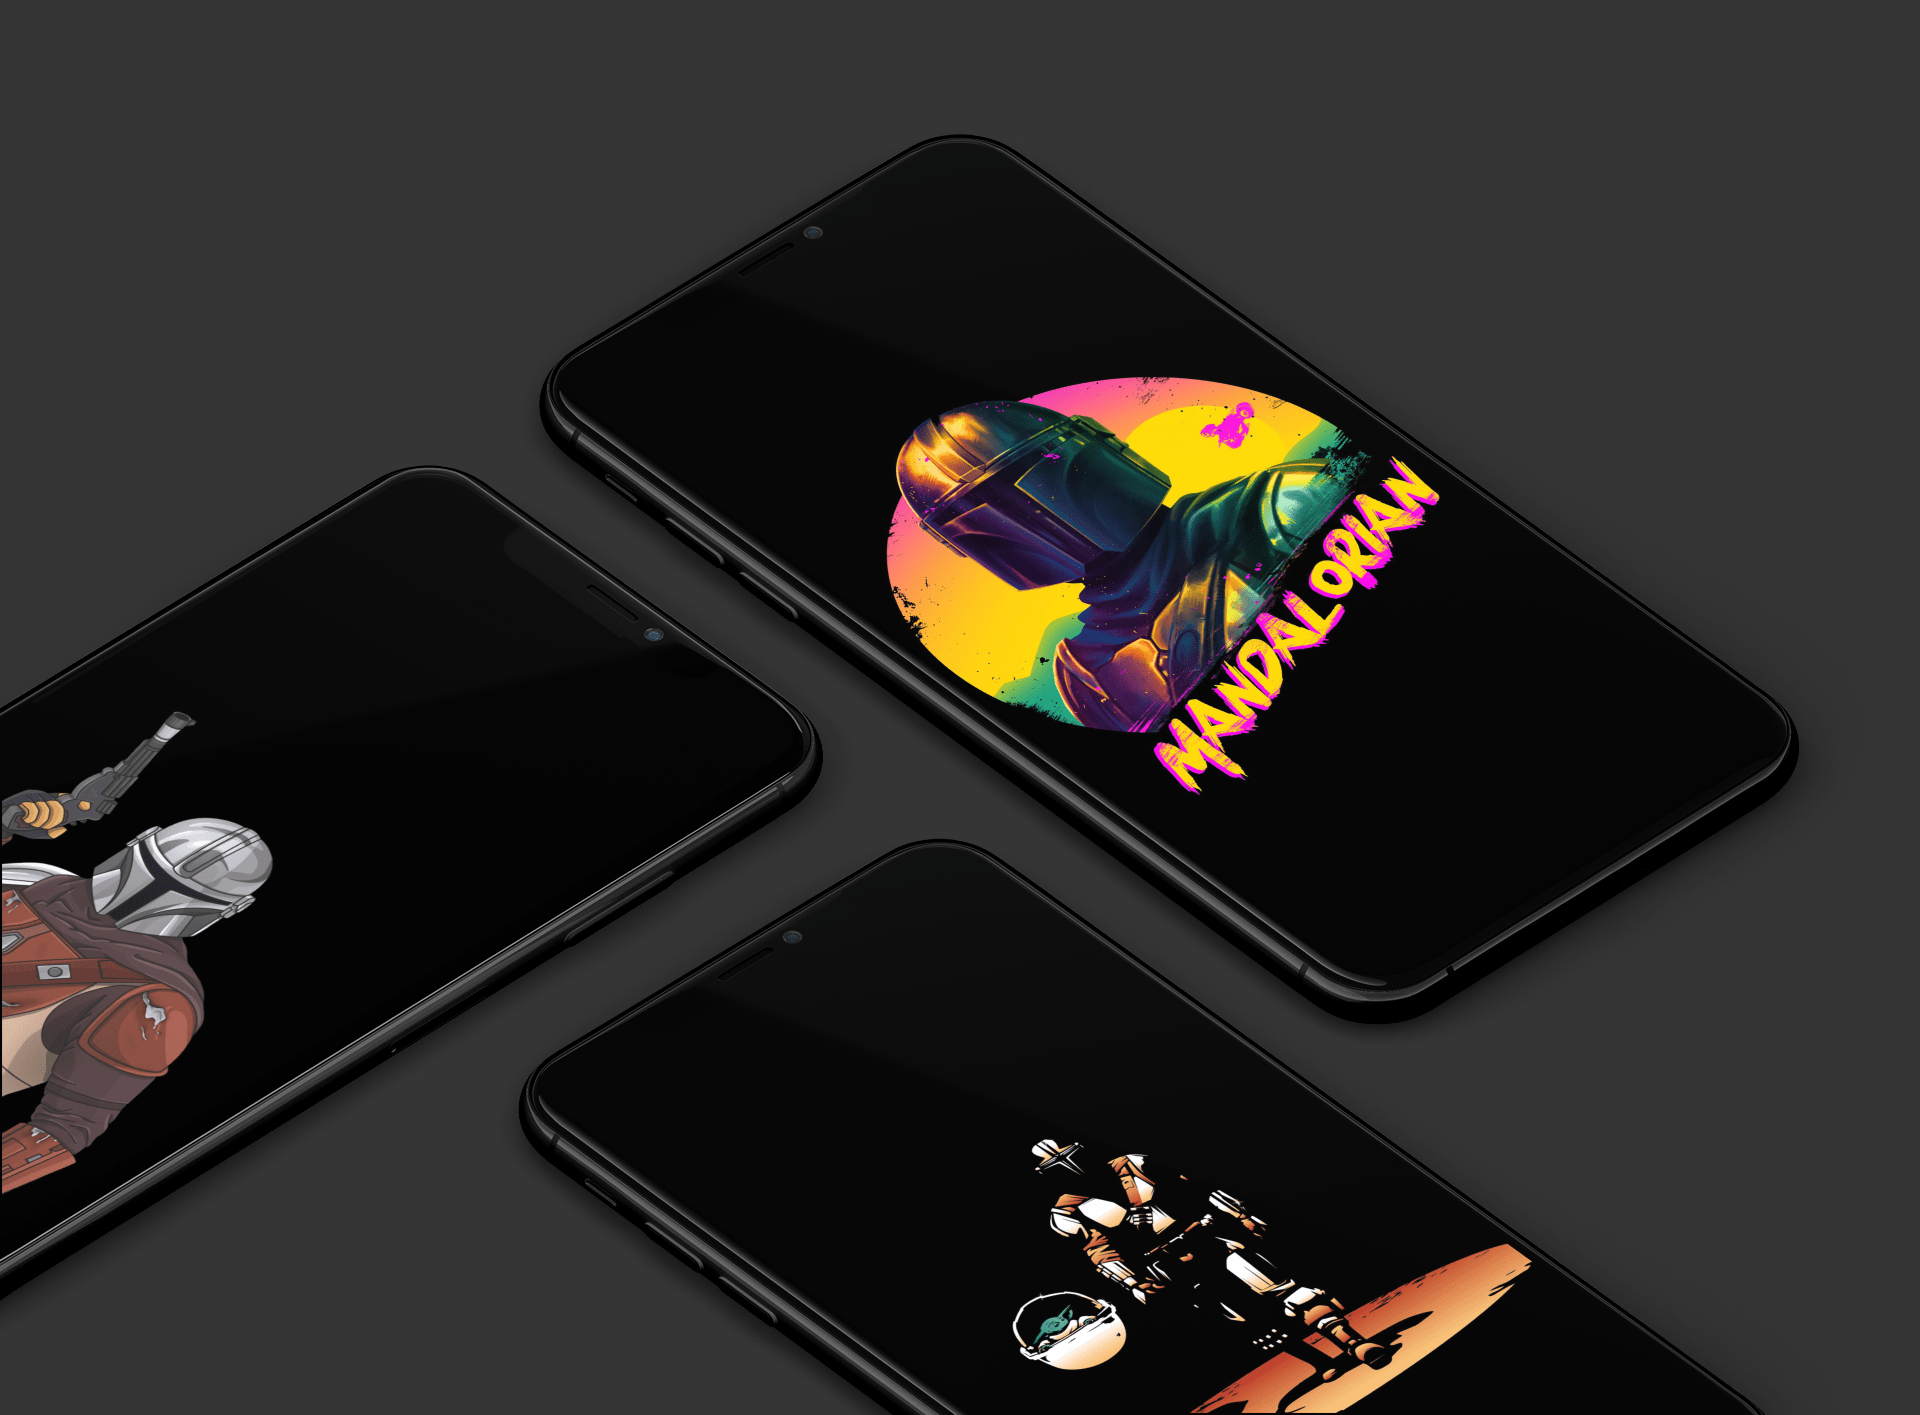 The Mandalorian wallpapers: OLED iPhone screens edition